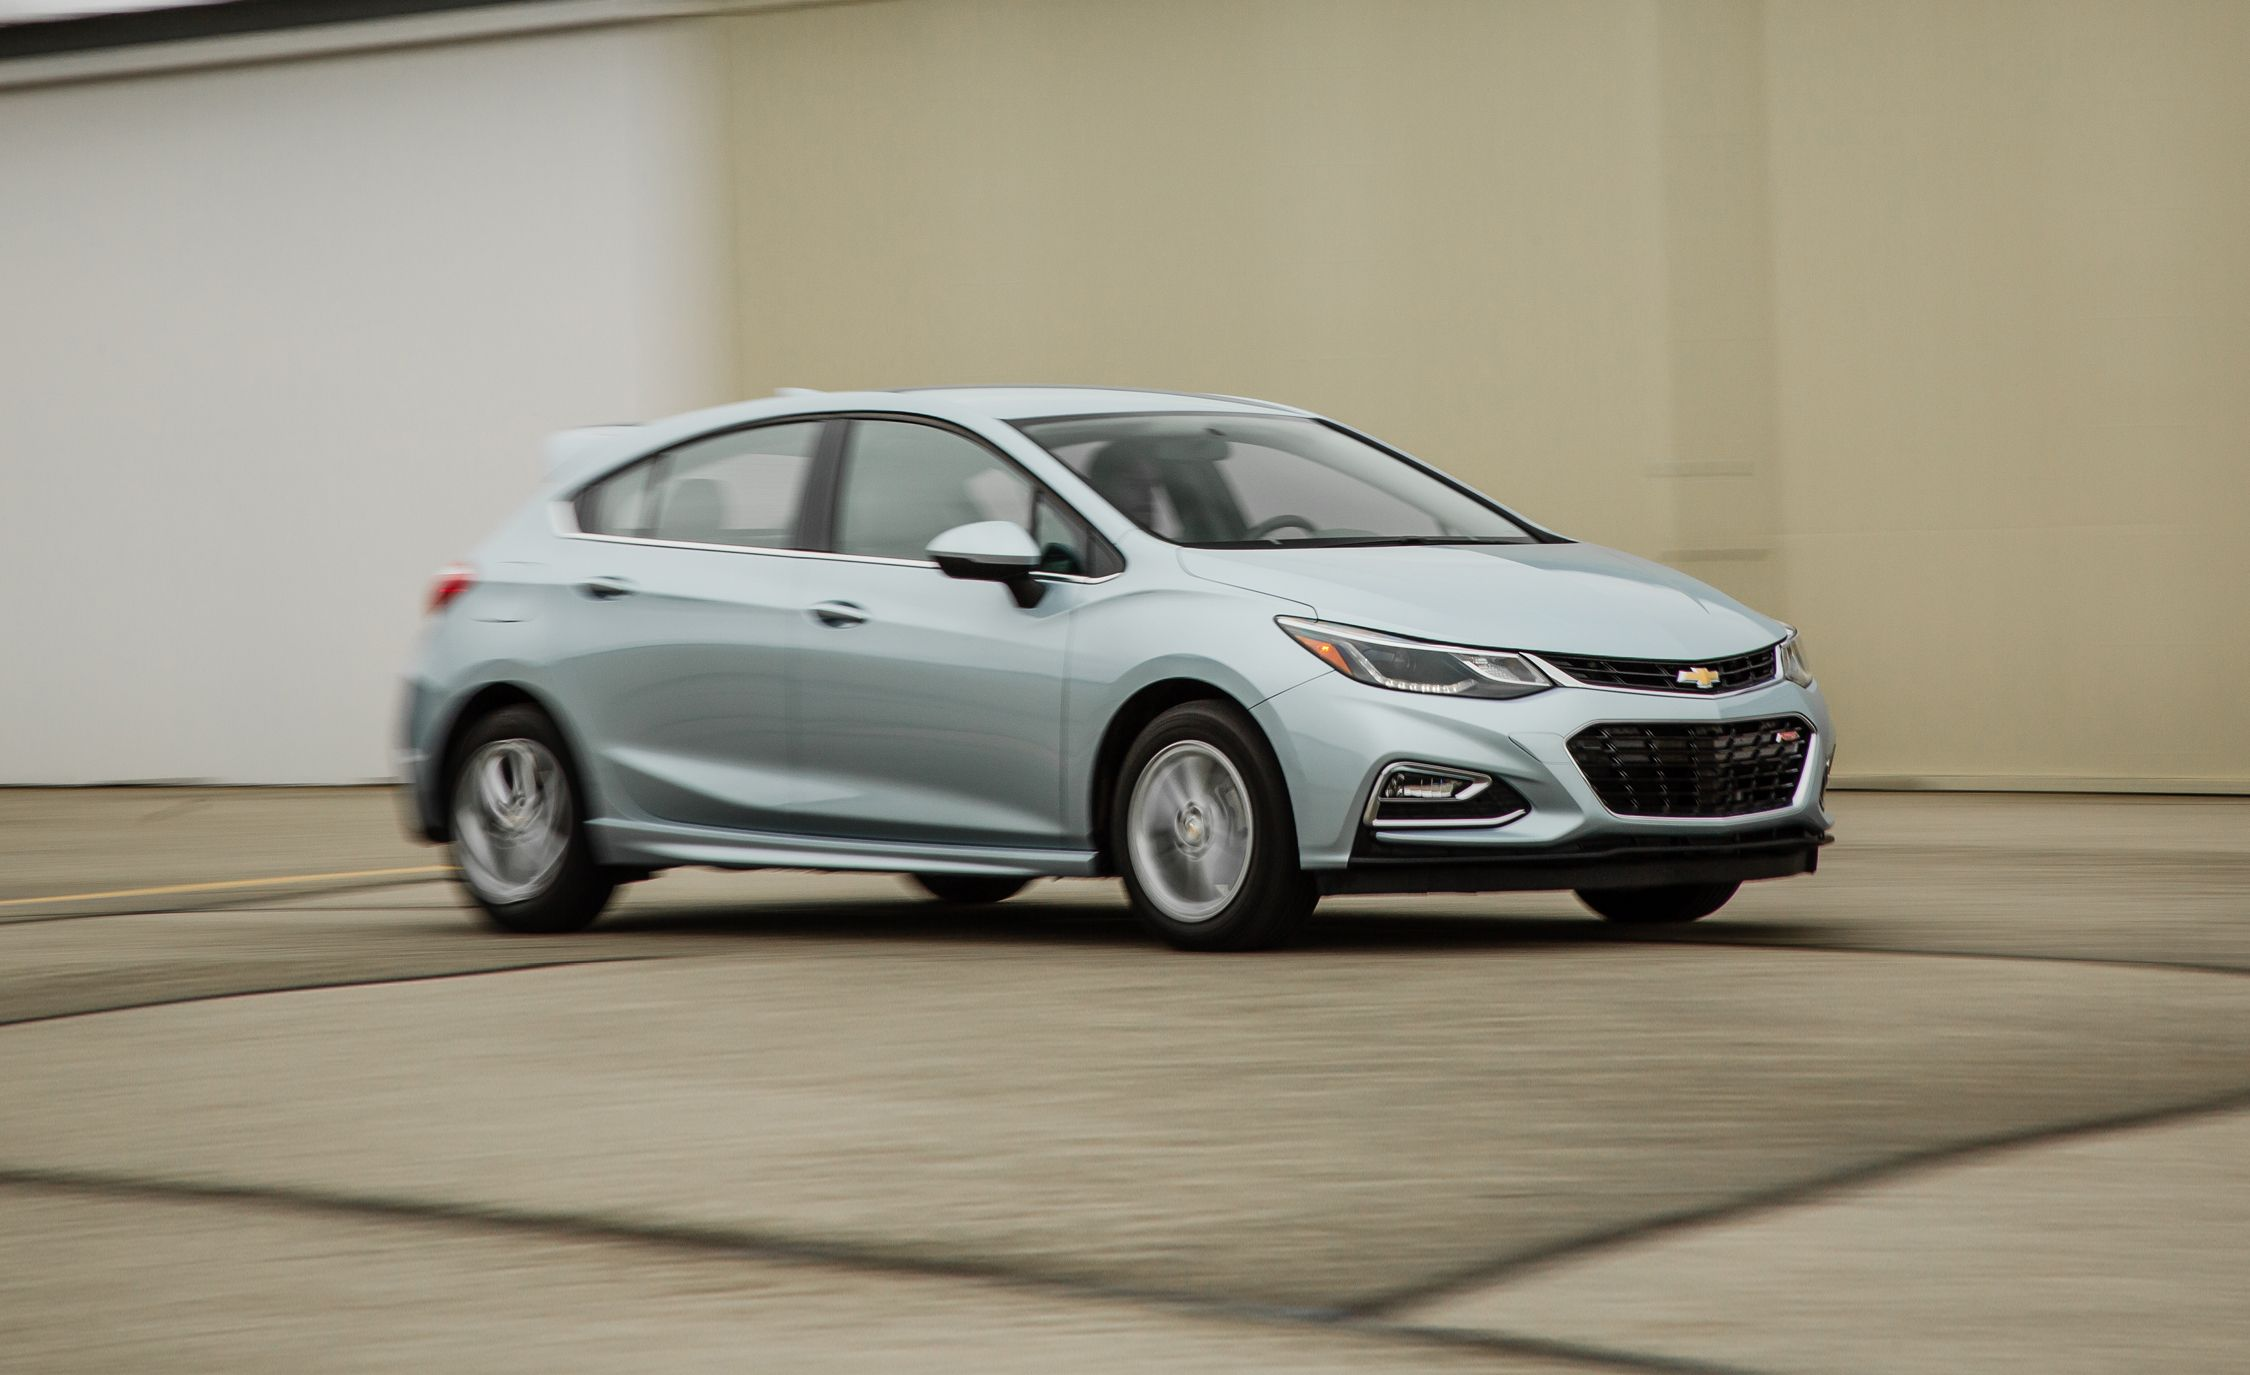 2017 Chevrolet Cruze Hatchback Manual Test Review Car And Driver Chevyclutchlinkage Chevy Truck Clutch Linkage Diagram Pictures